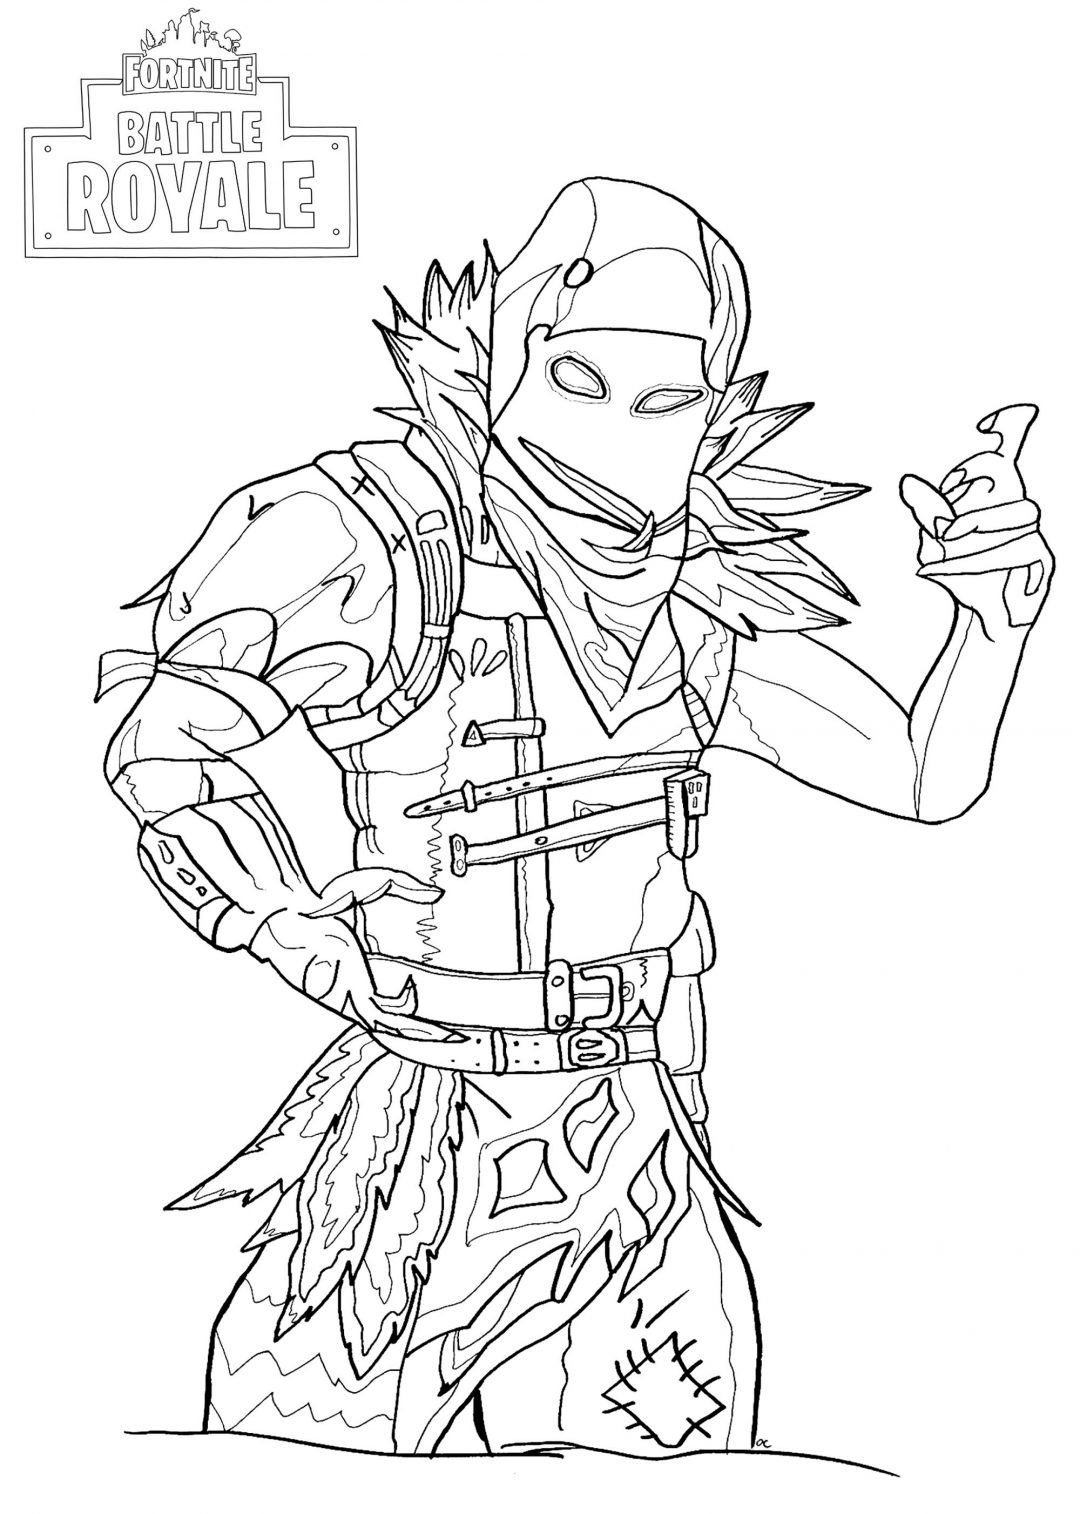 Fortnite Coloring Pages Coloring Pages Drawings Character